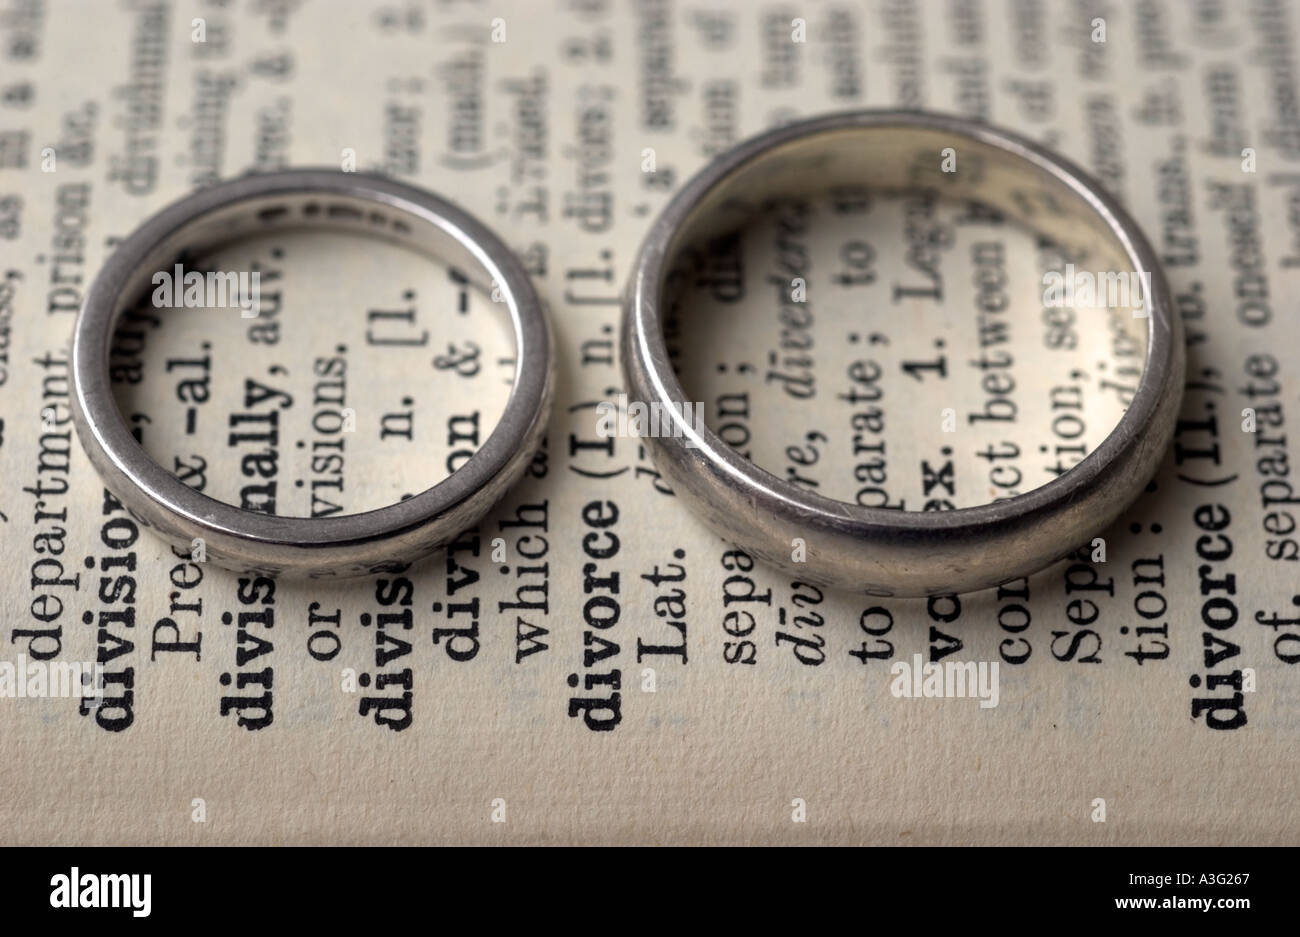 wedding-rings-on-a-dictionary-showing-th